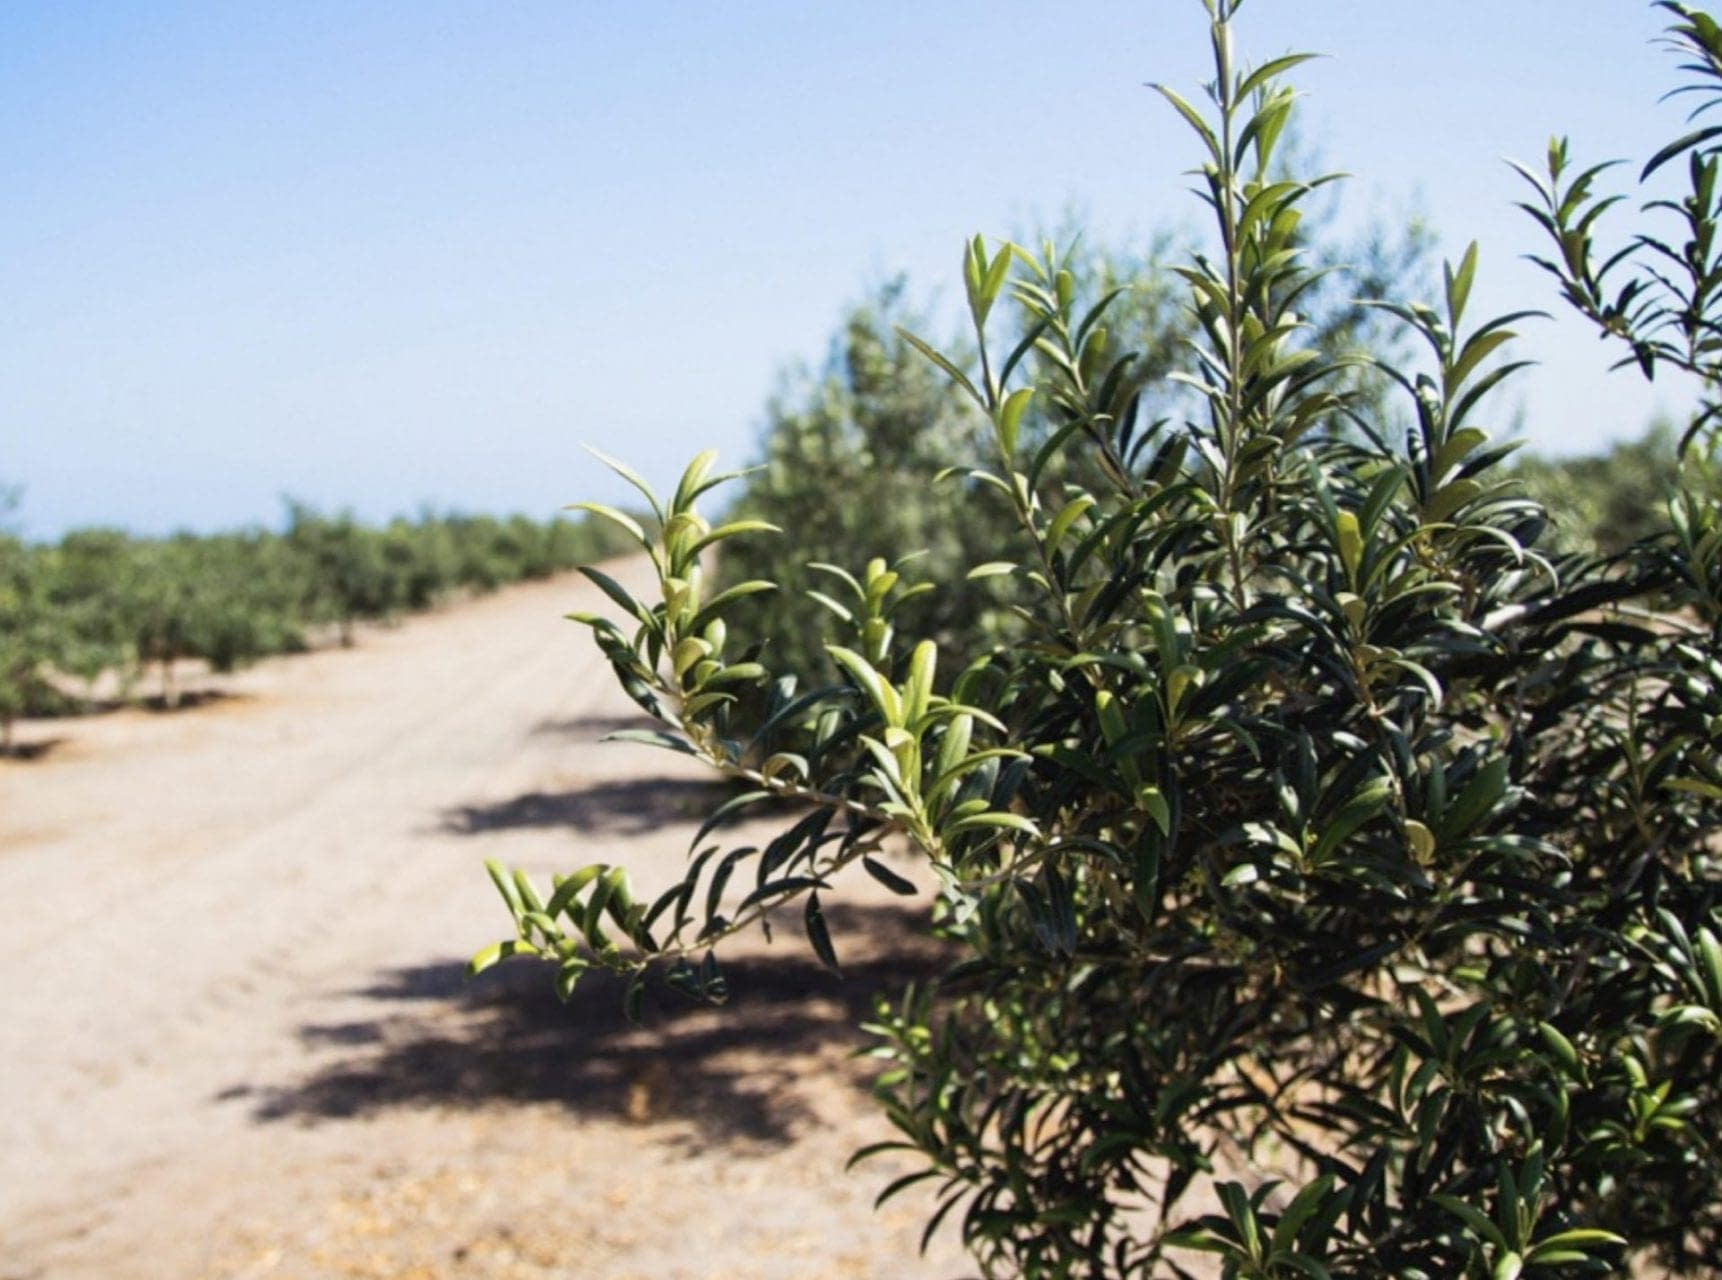 business-production-south-america-an-olive-harvest-in-peru-amid-sweeping-changes-olive-oil-times